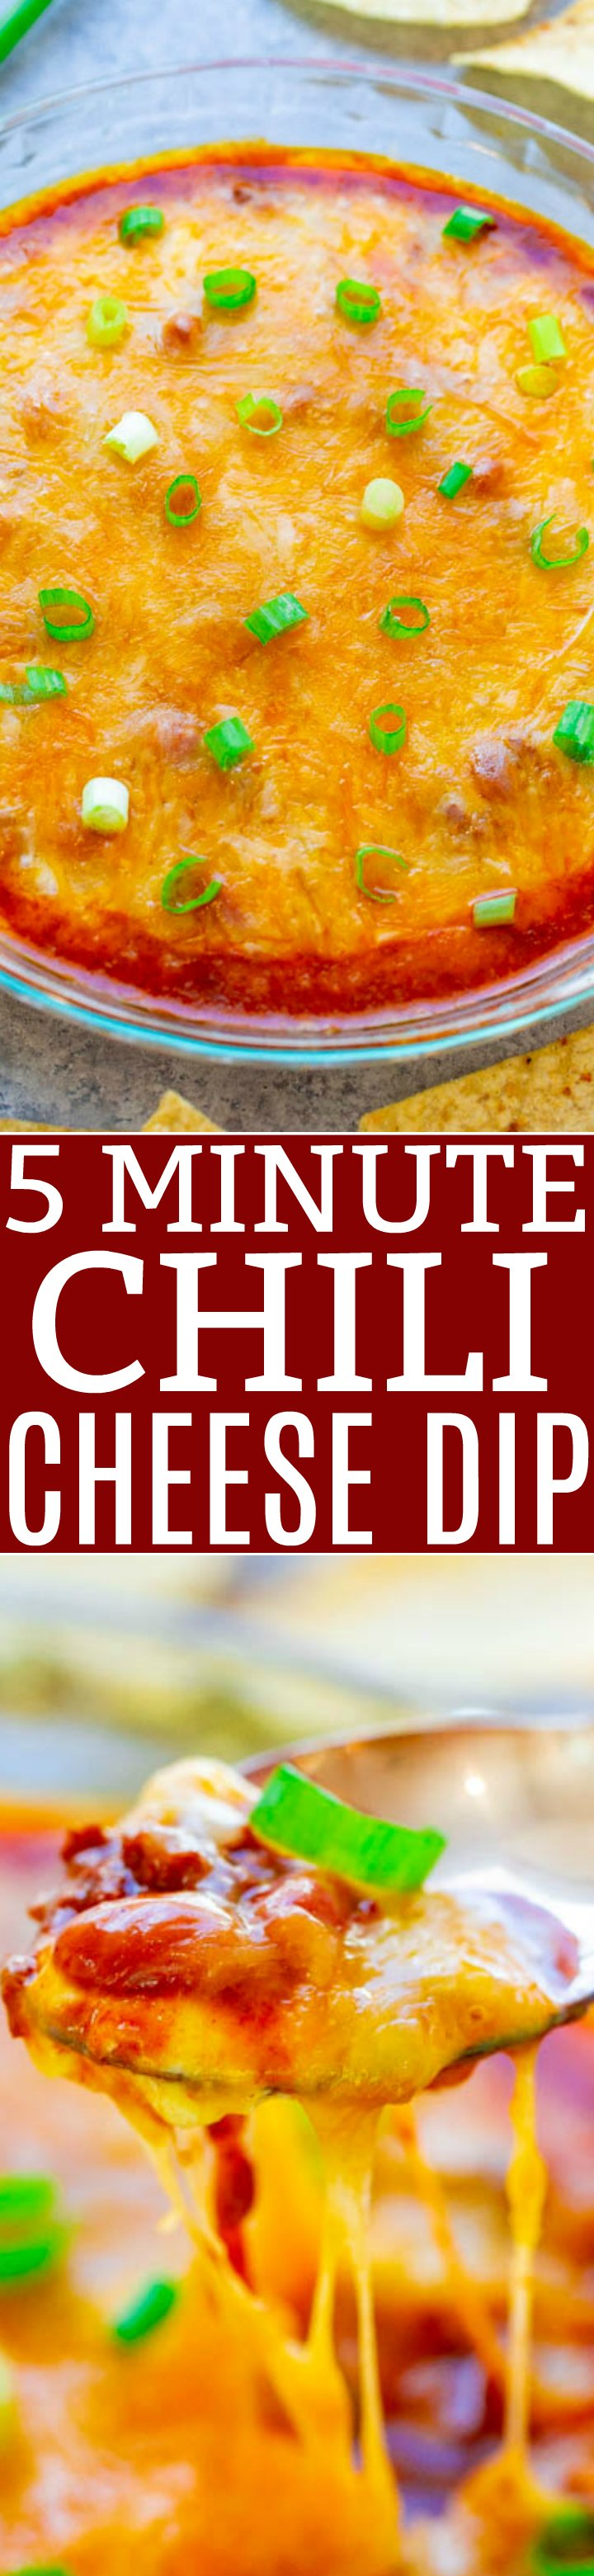 5-Minute Chili Cheese Dip - EASY, ready in 5 minutes, just 3 main ingredients, and made in the microwave!! The CHEESE is irresistible! The perfect game day or easy party appetizer that everyone LOVES!!